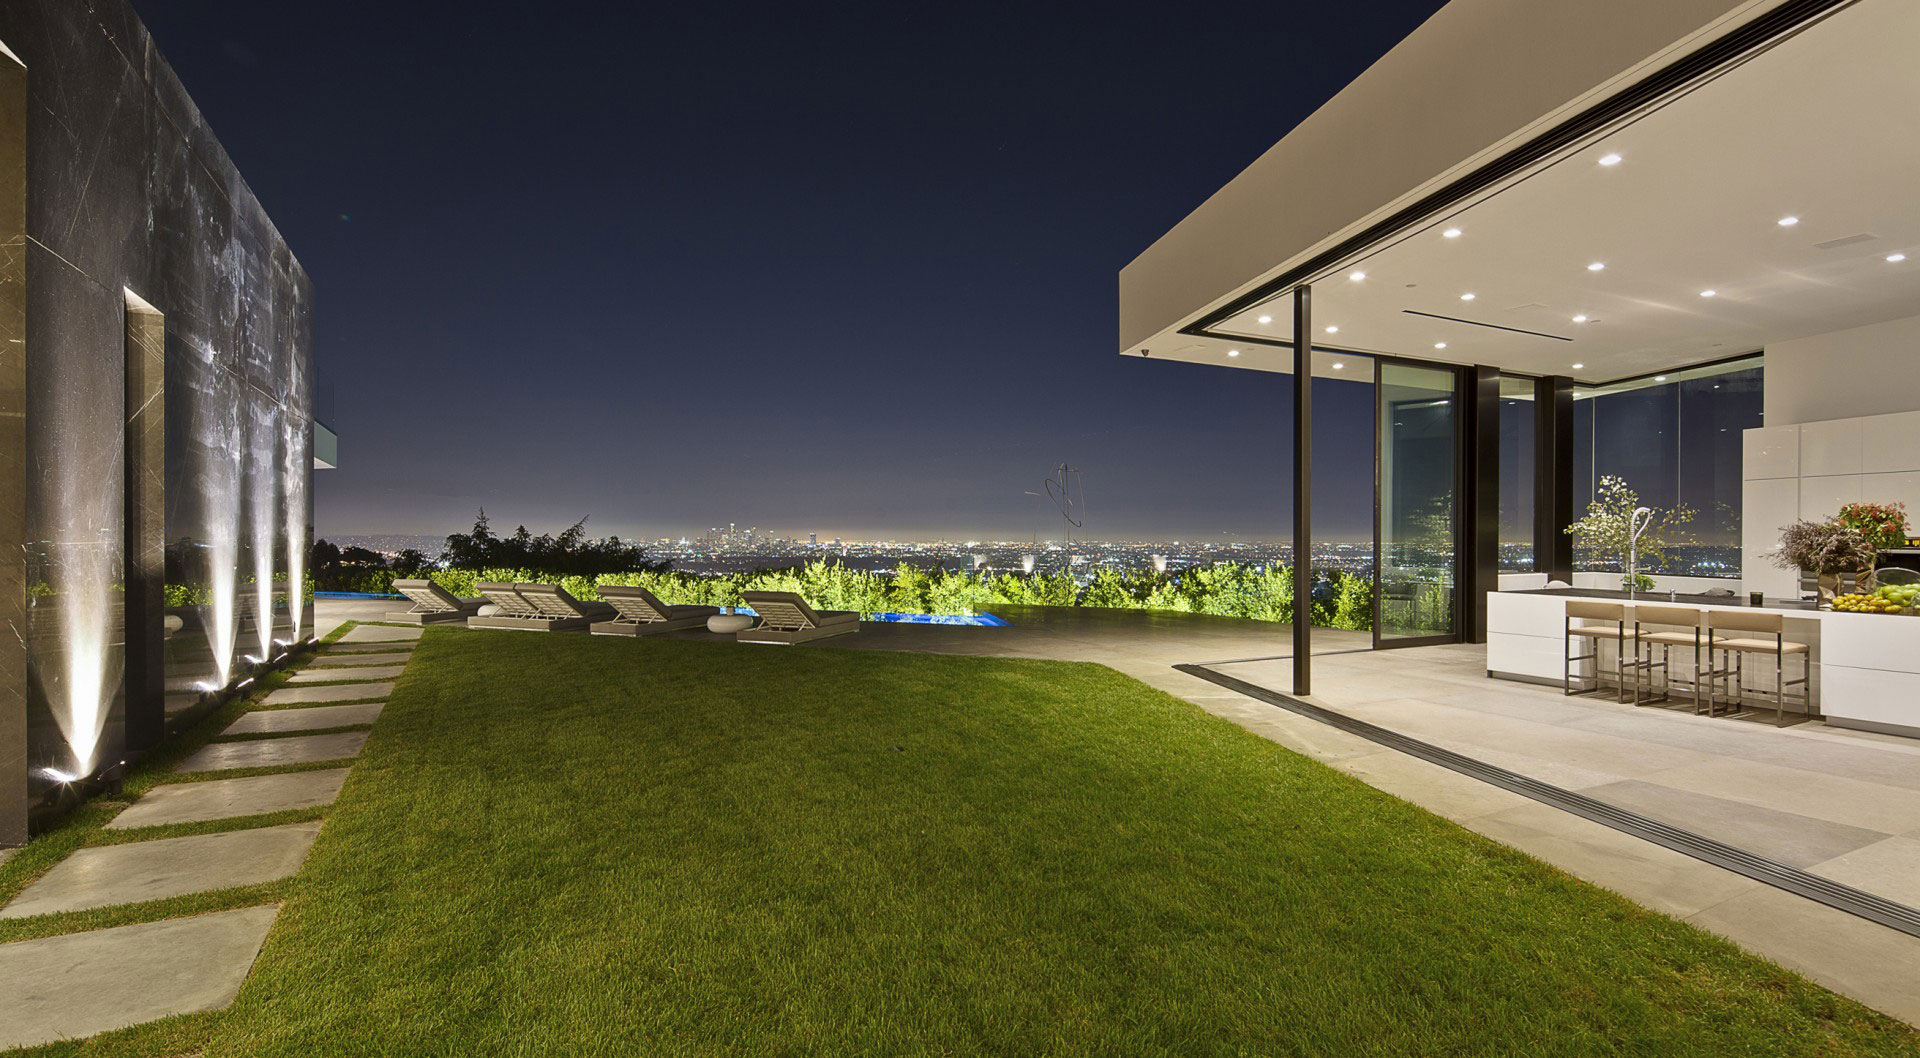 Landscape Ideas - A dramatic glass home overlooking the l a basin